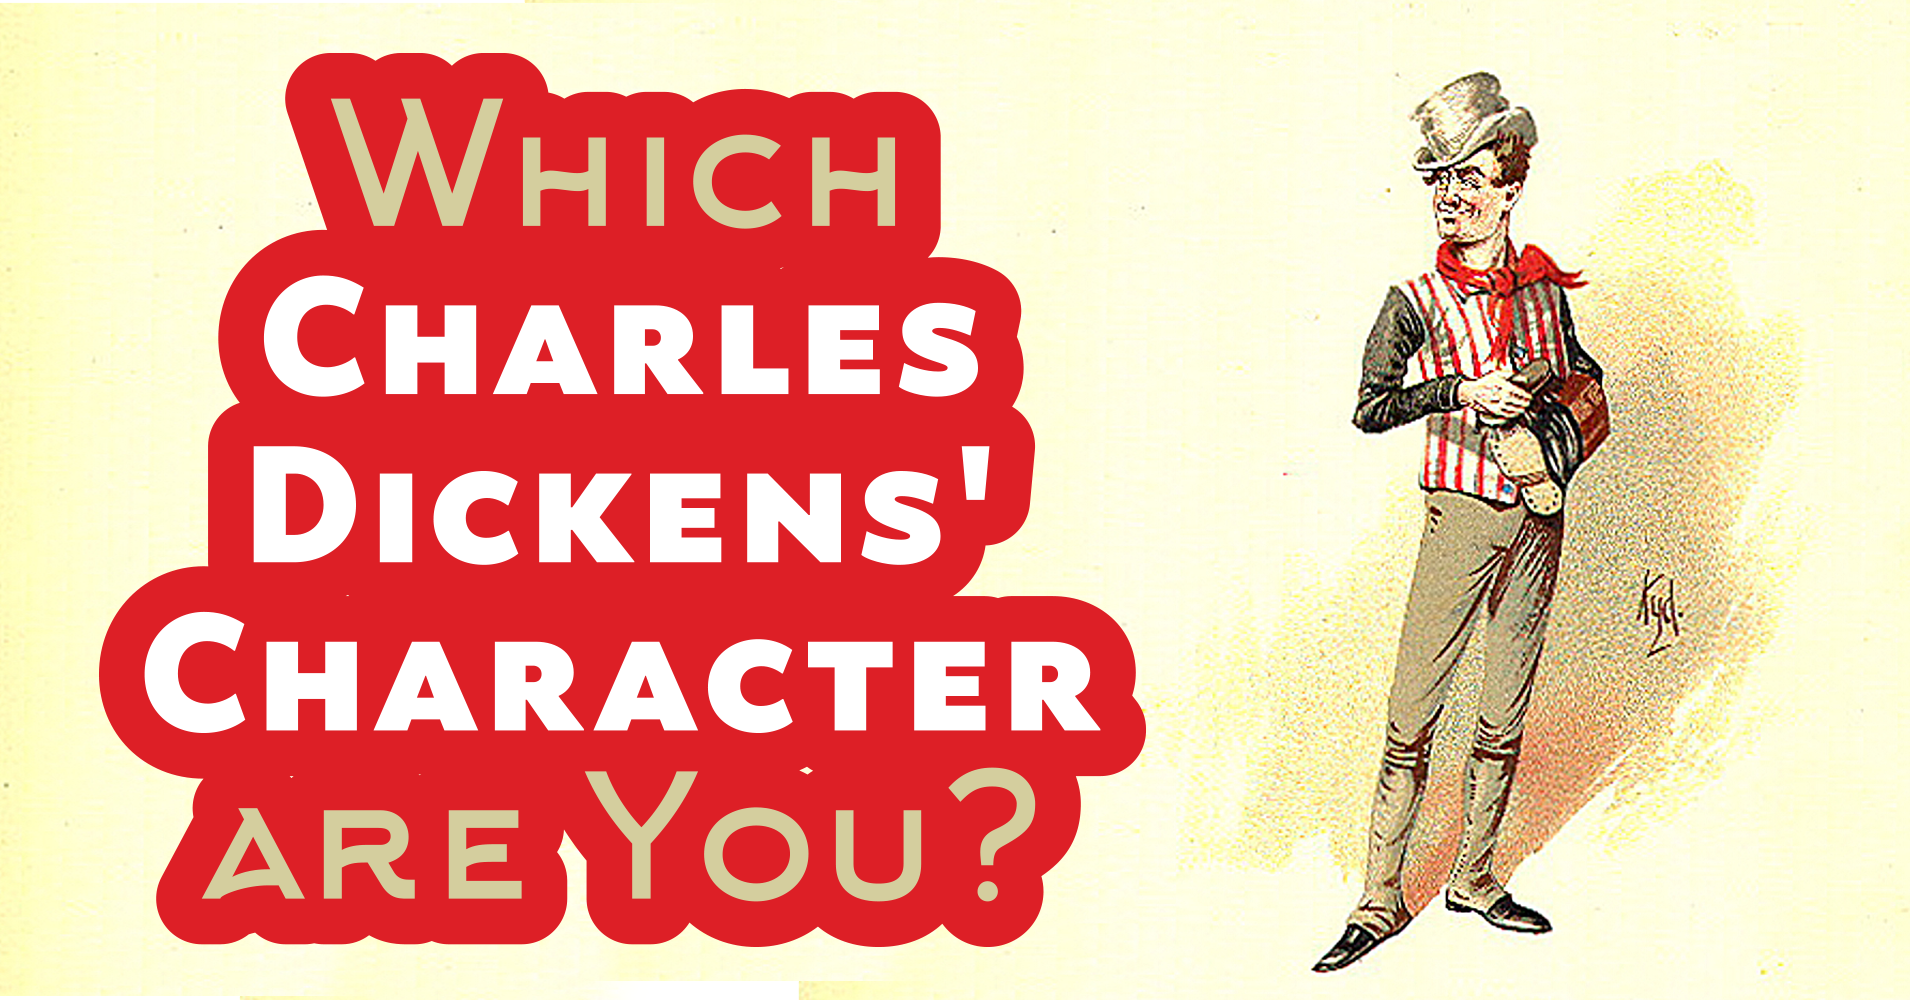 character dickens charles which quizony quiz index